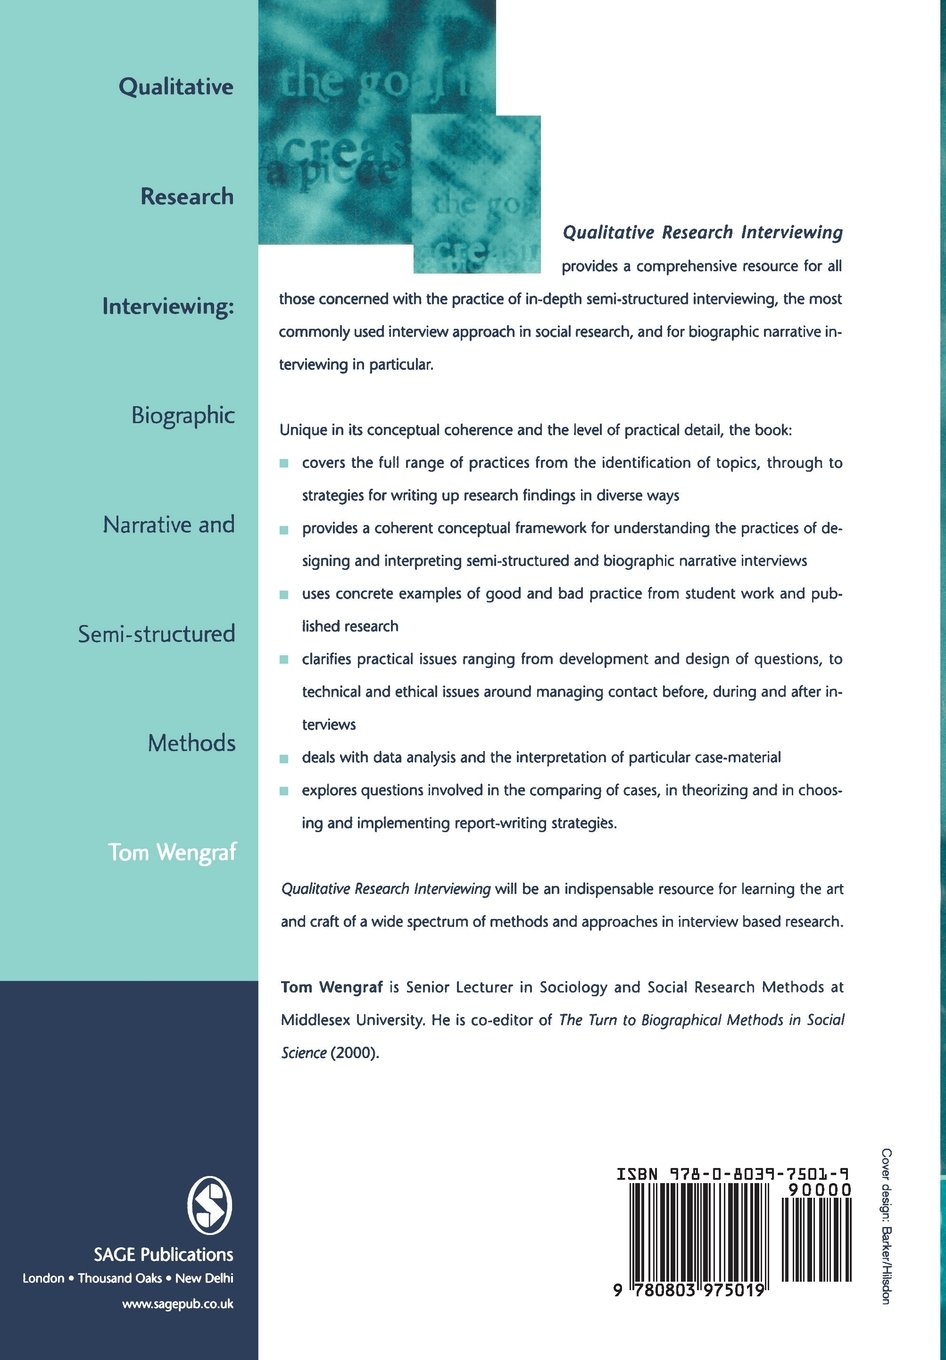 qualitative research interviewing biographic narrative and semi qualitative research interviewing biographic narrative and semi structured methods amazon co uk tom wengraf 9780803975019 books